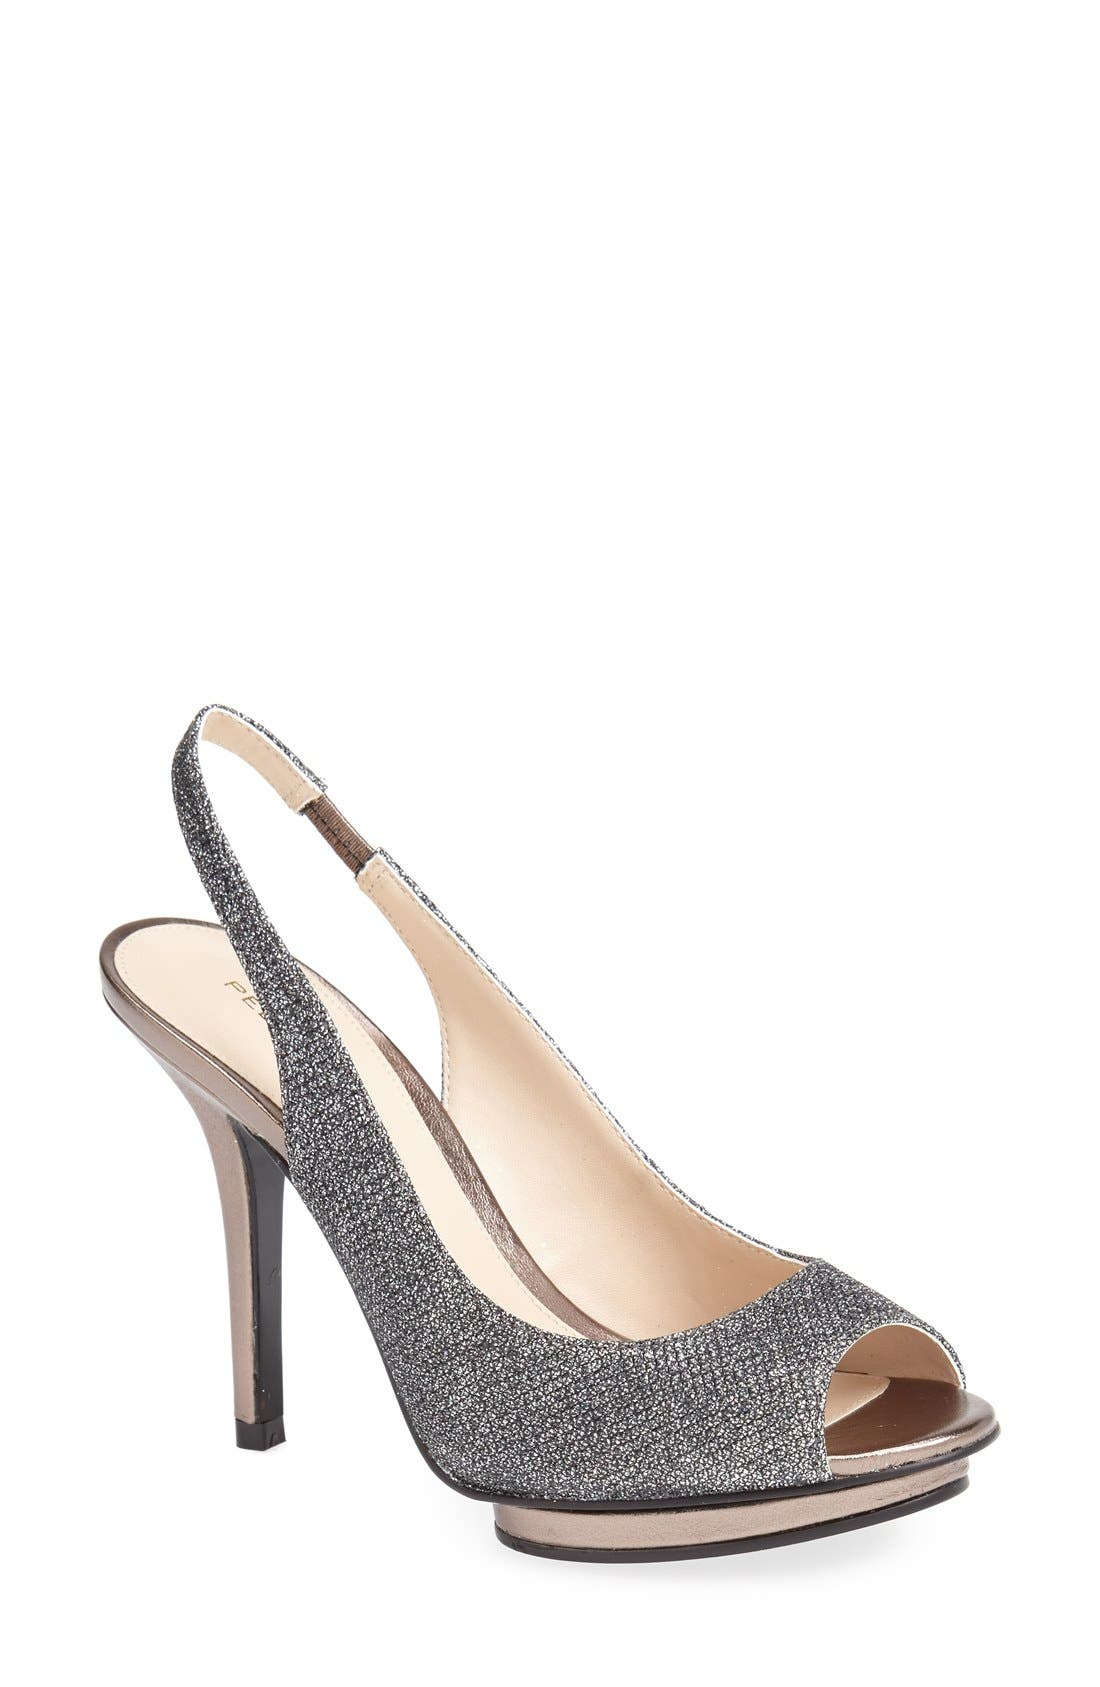 'Rivka' Open Toe Platform Slingback Sandal,                         Main,                         color,